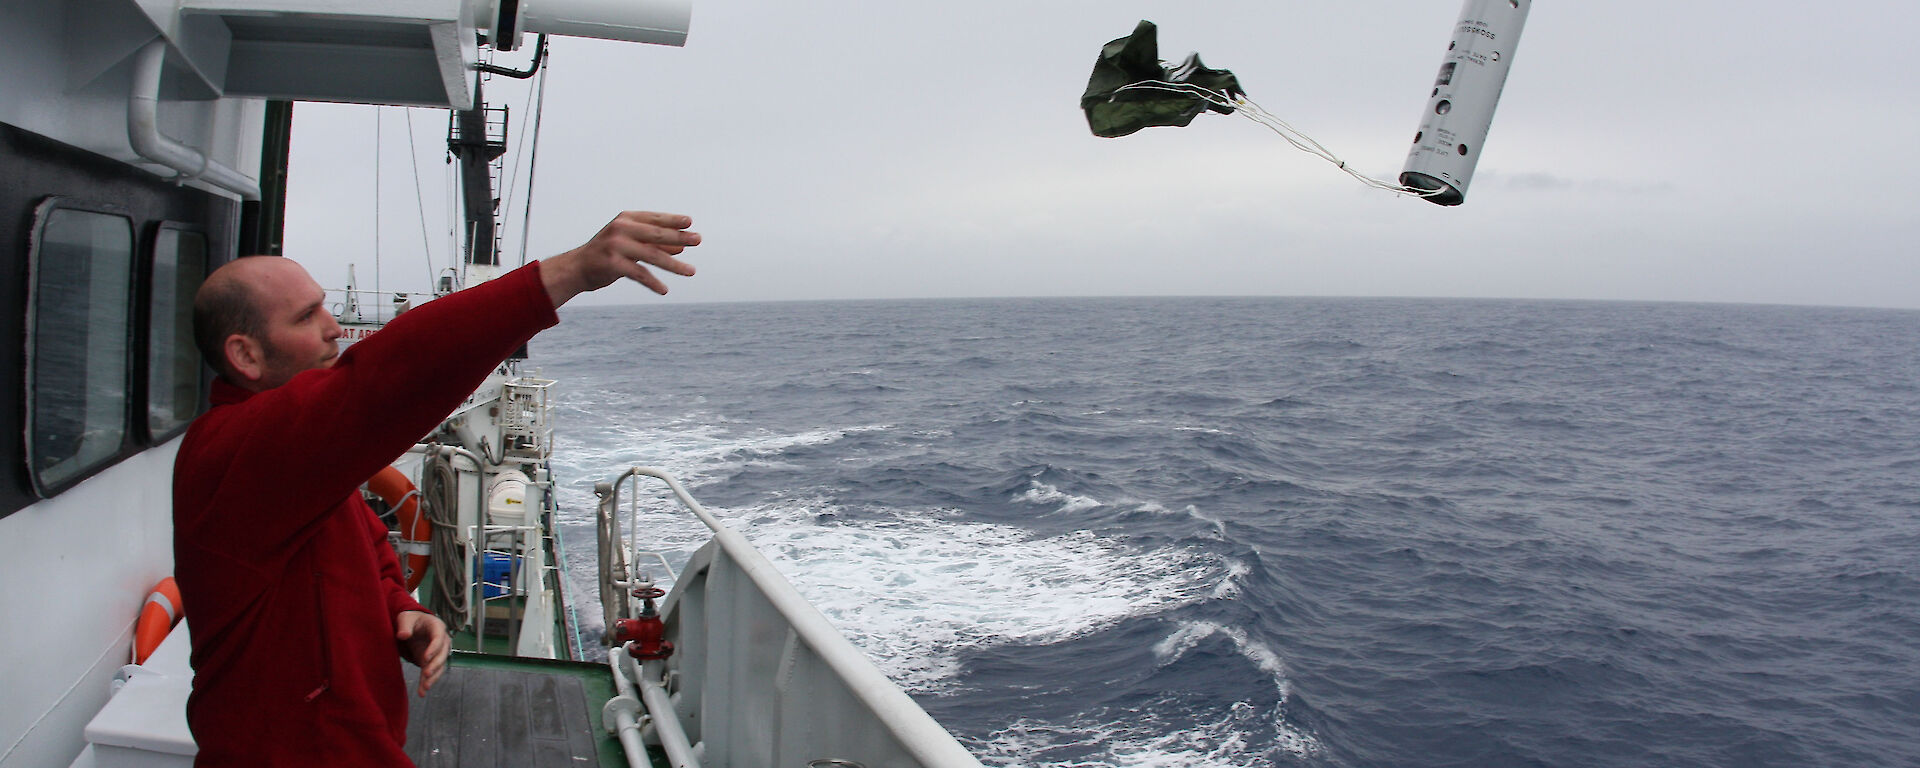 Acoustician Dr Brian Miller throws a sonobuoy into the ocean from the side of the ship